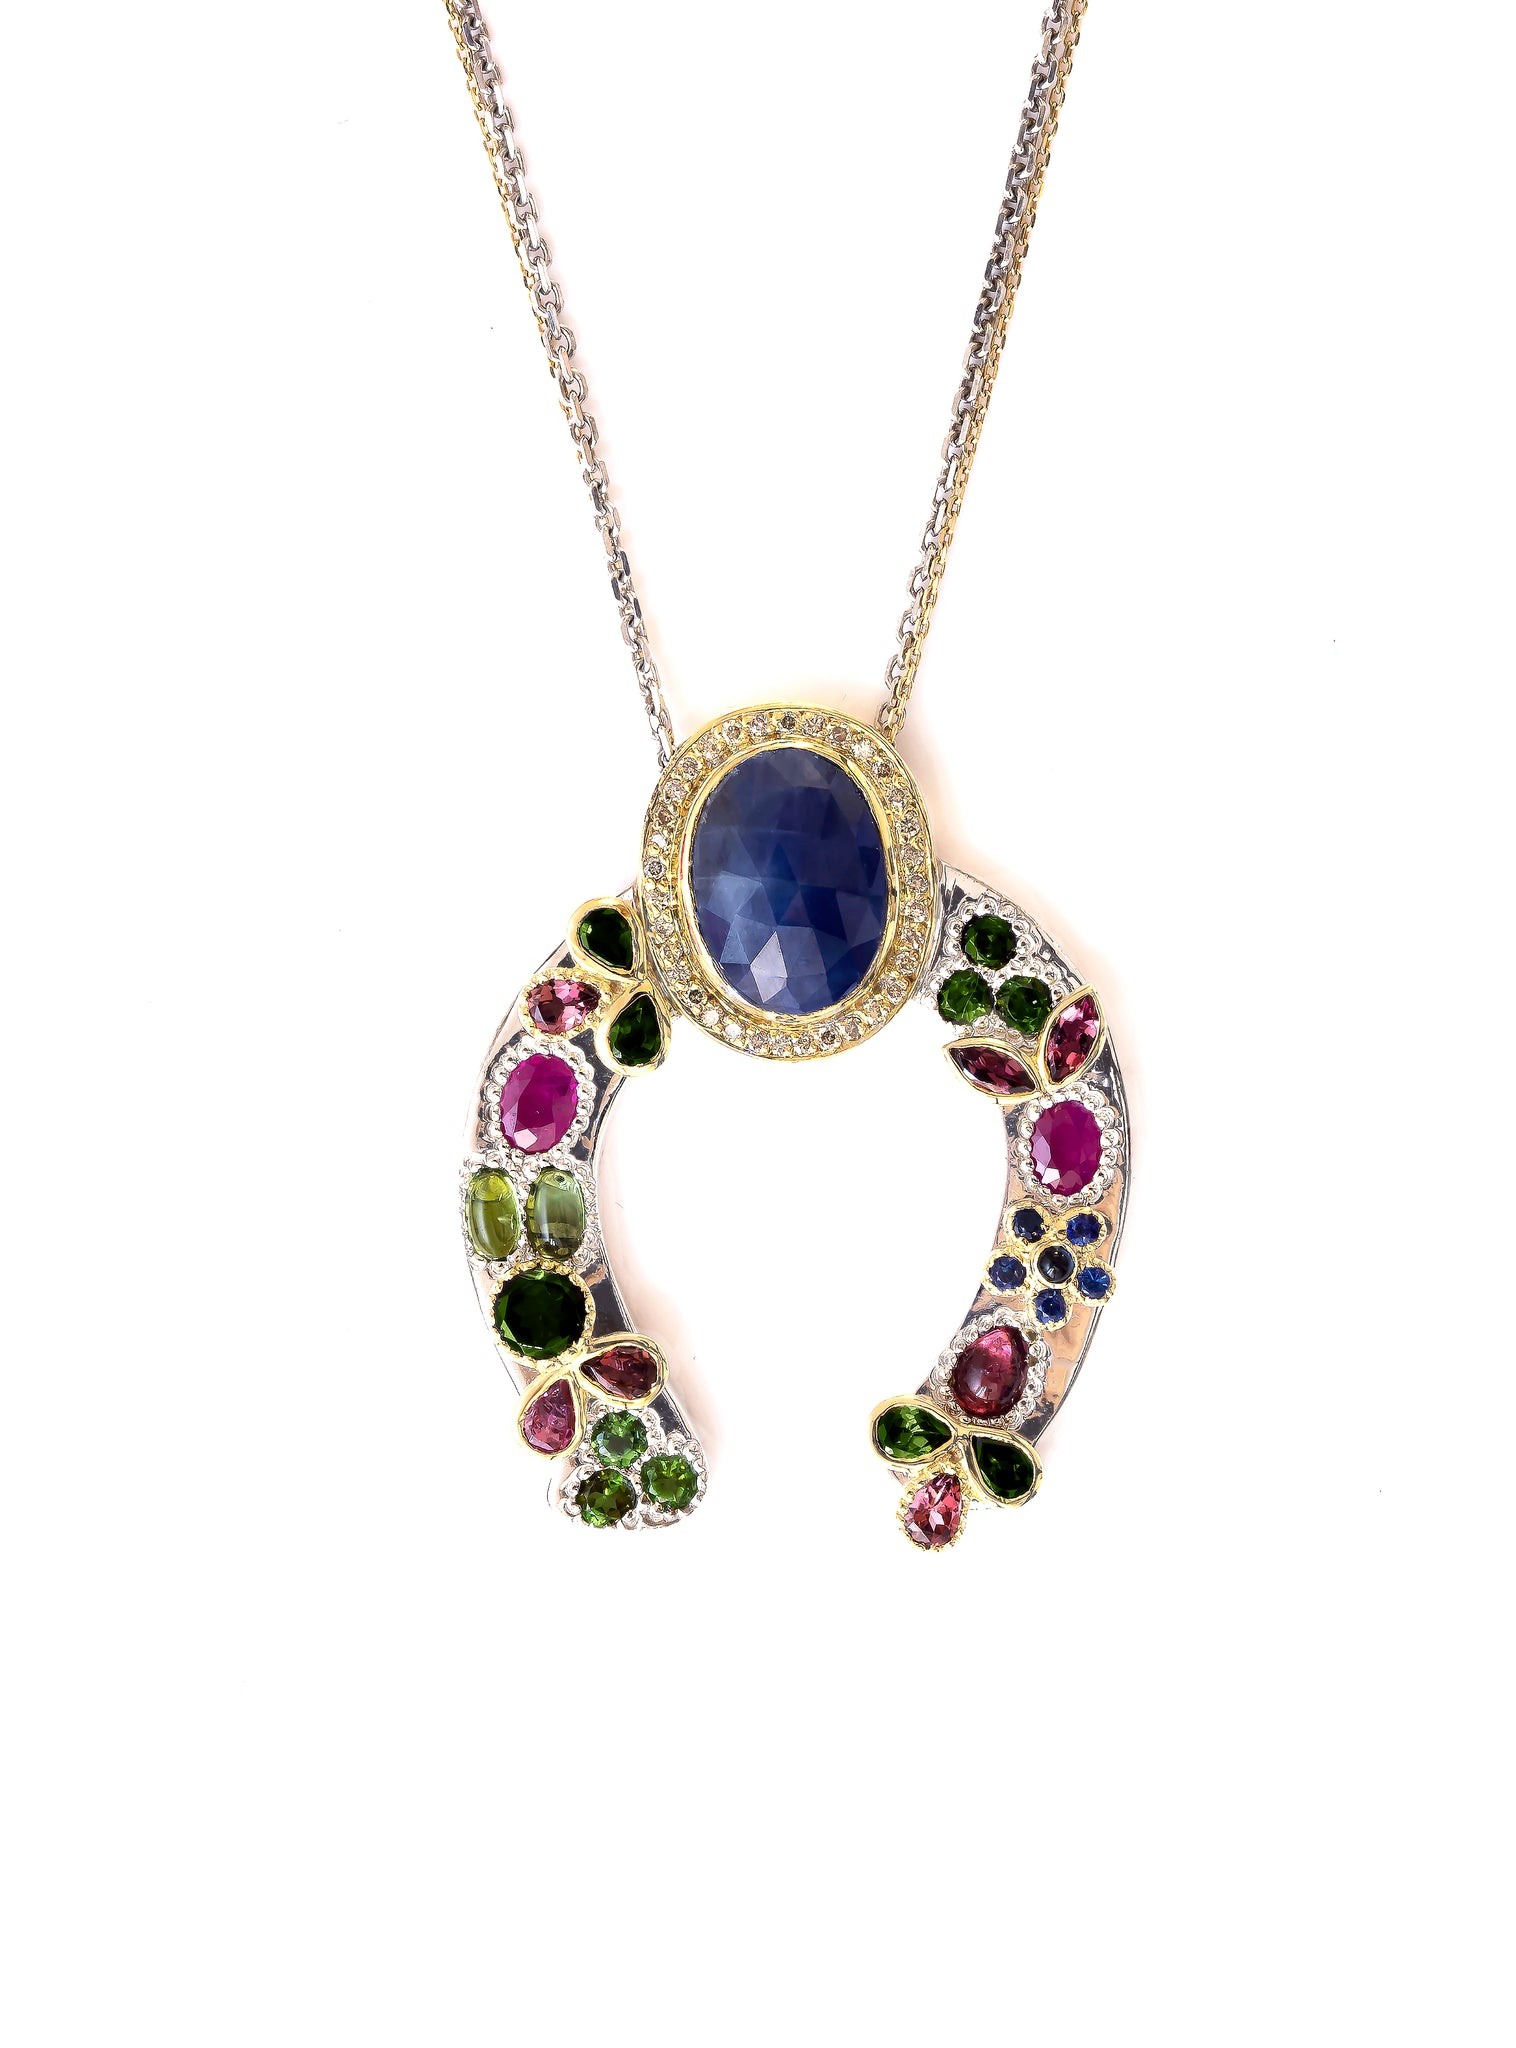 Horseshoe Necklace with Oval Blue Sapphire and Diamonds crown